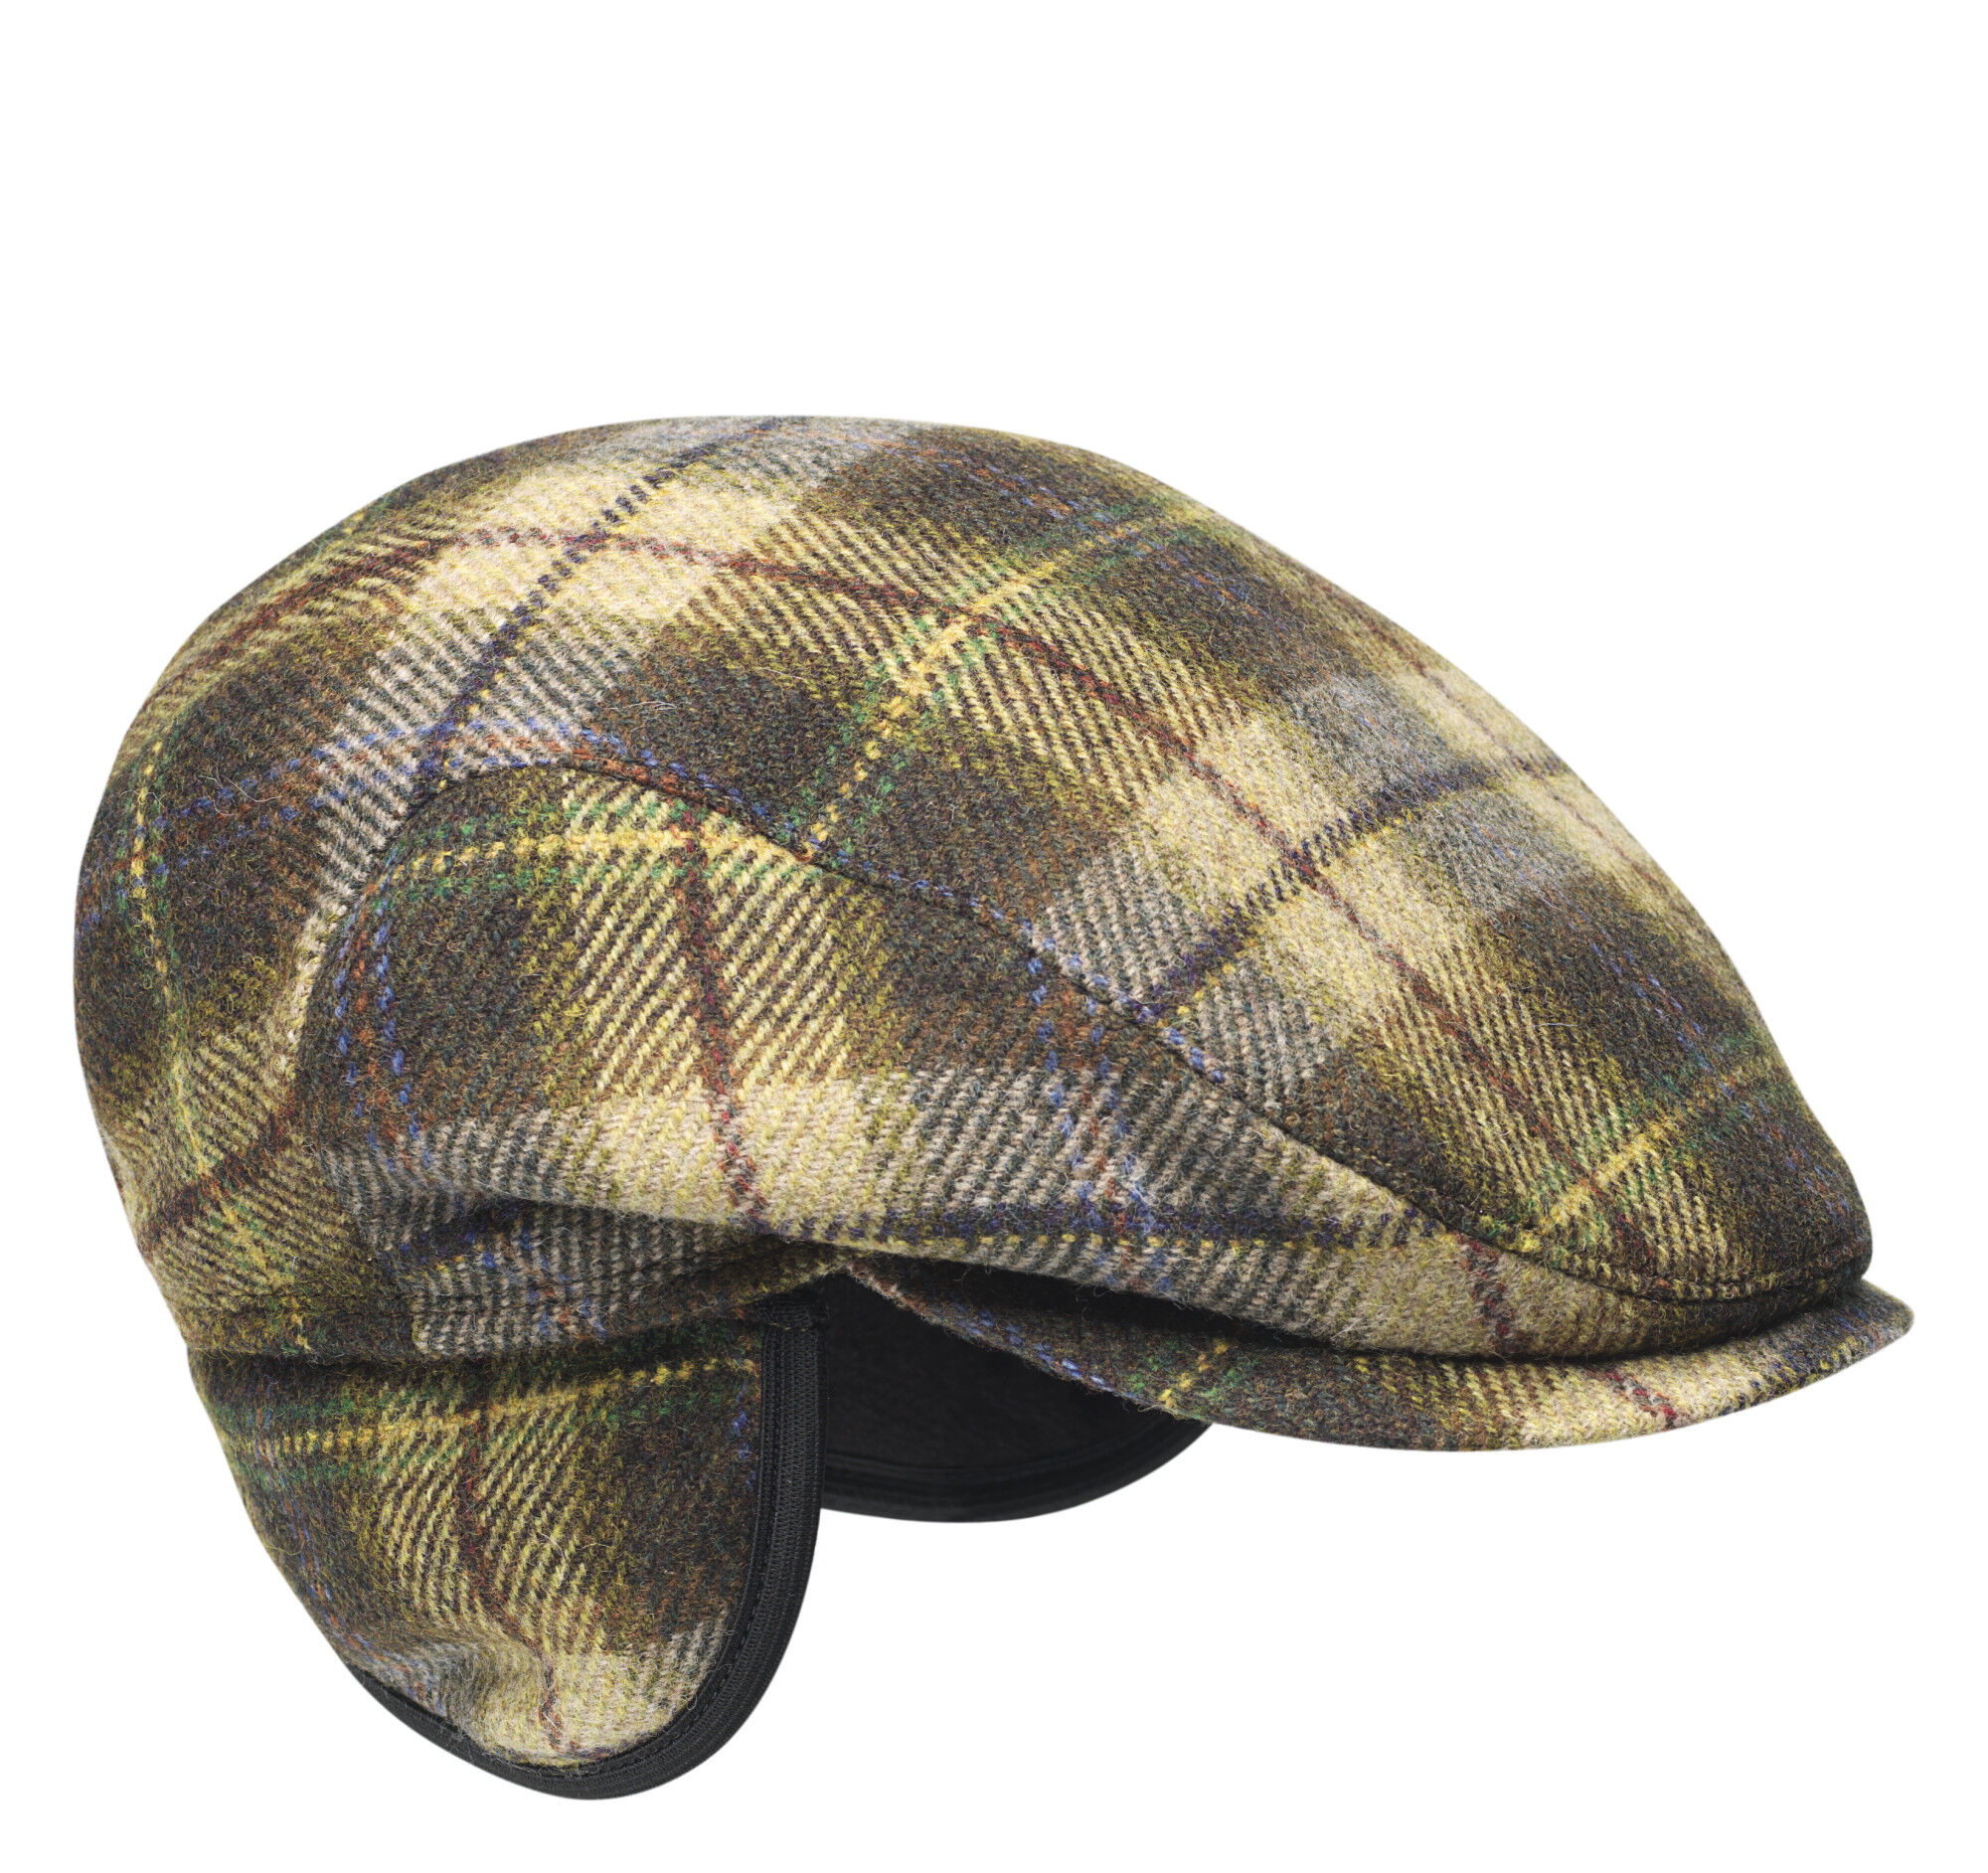 ... Wool Ivy Caps with Earflaps 0d388da98406